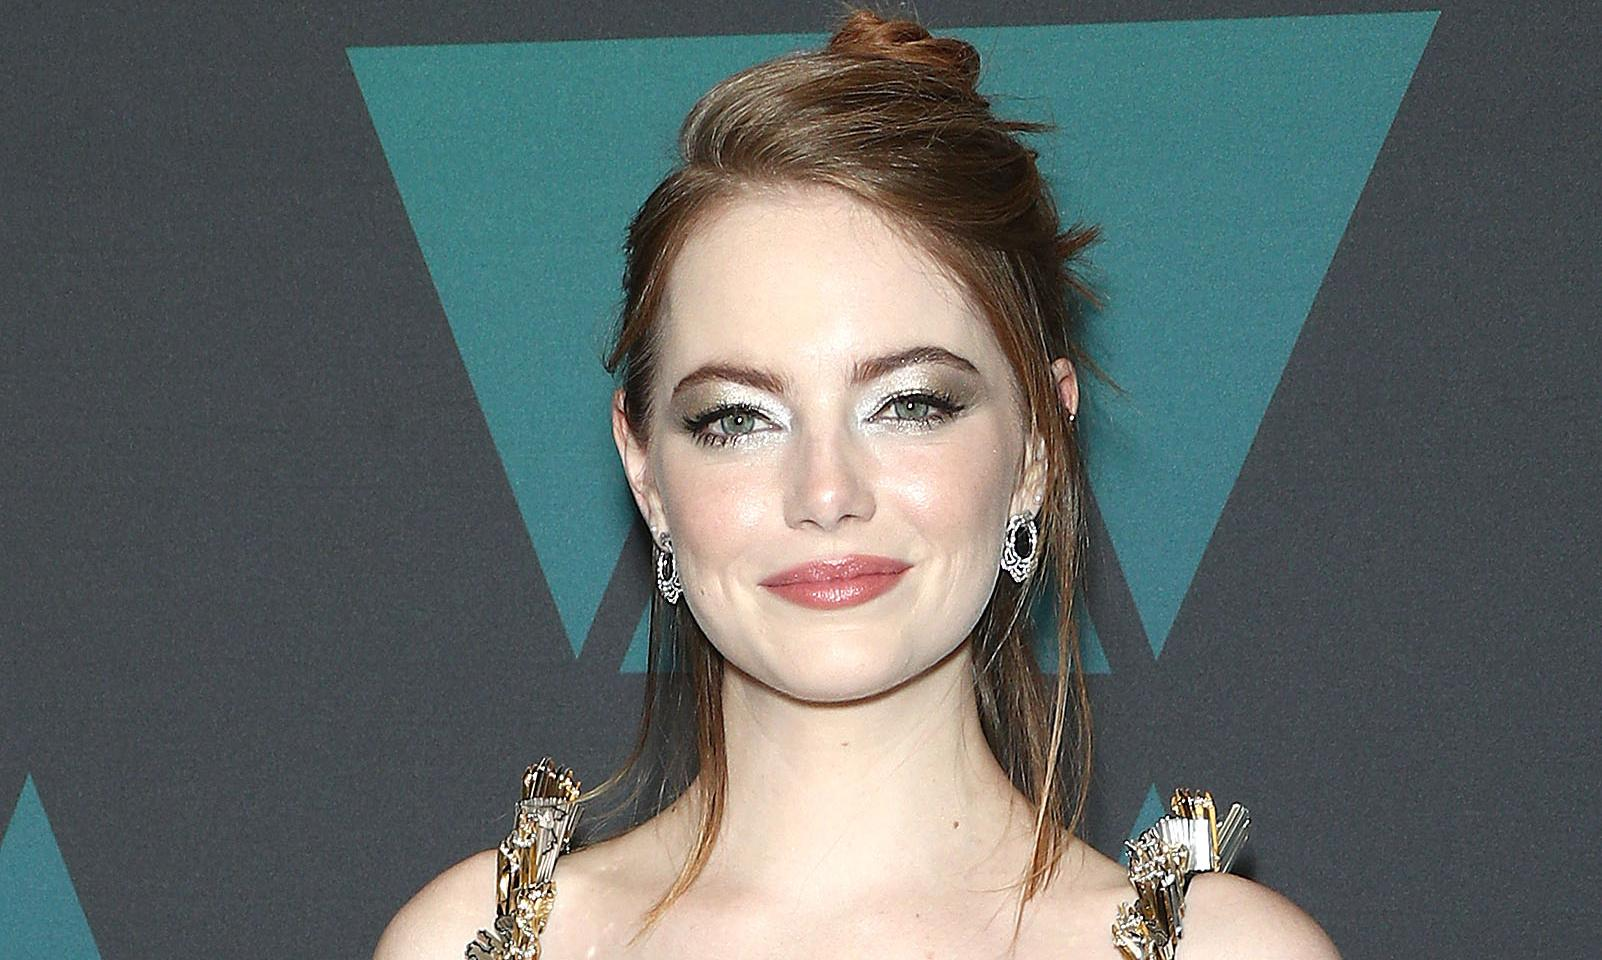 Emma Stone denies injury caused by fall at Spice Girls concert